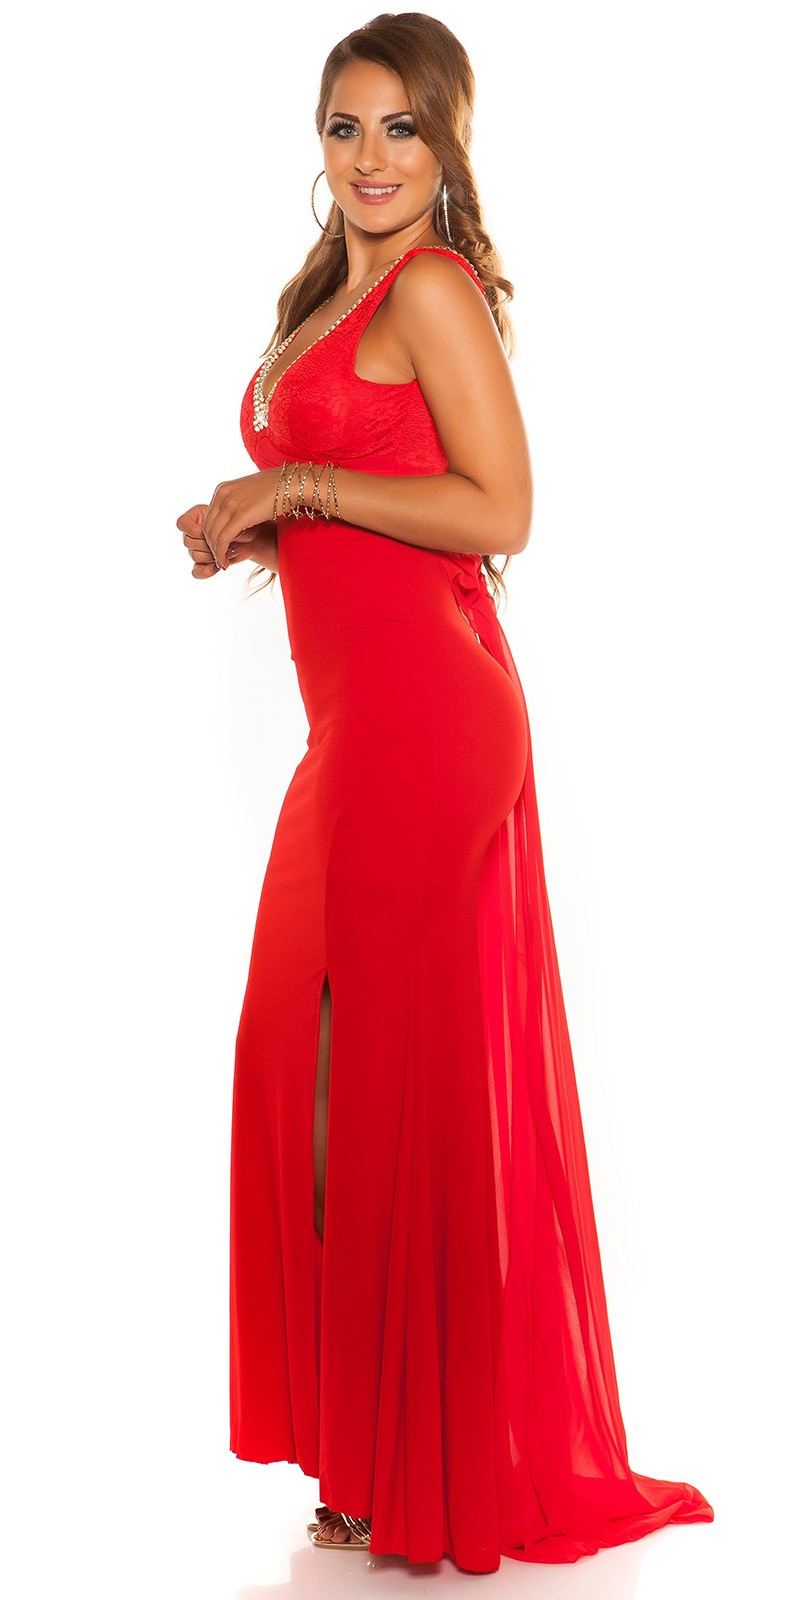 8410671e5c6f eeSexy Koucla evening dress laces  Color RED Size S 0000K9153-N ROT 5 (1) ·  eeSexy Koucla evening dress laces  Color RED Size S 0000K9153-N ROT 5